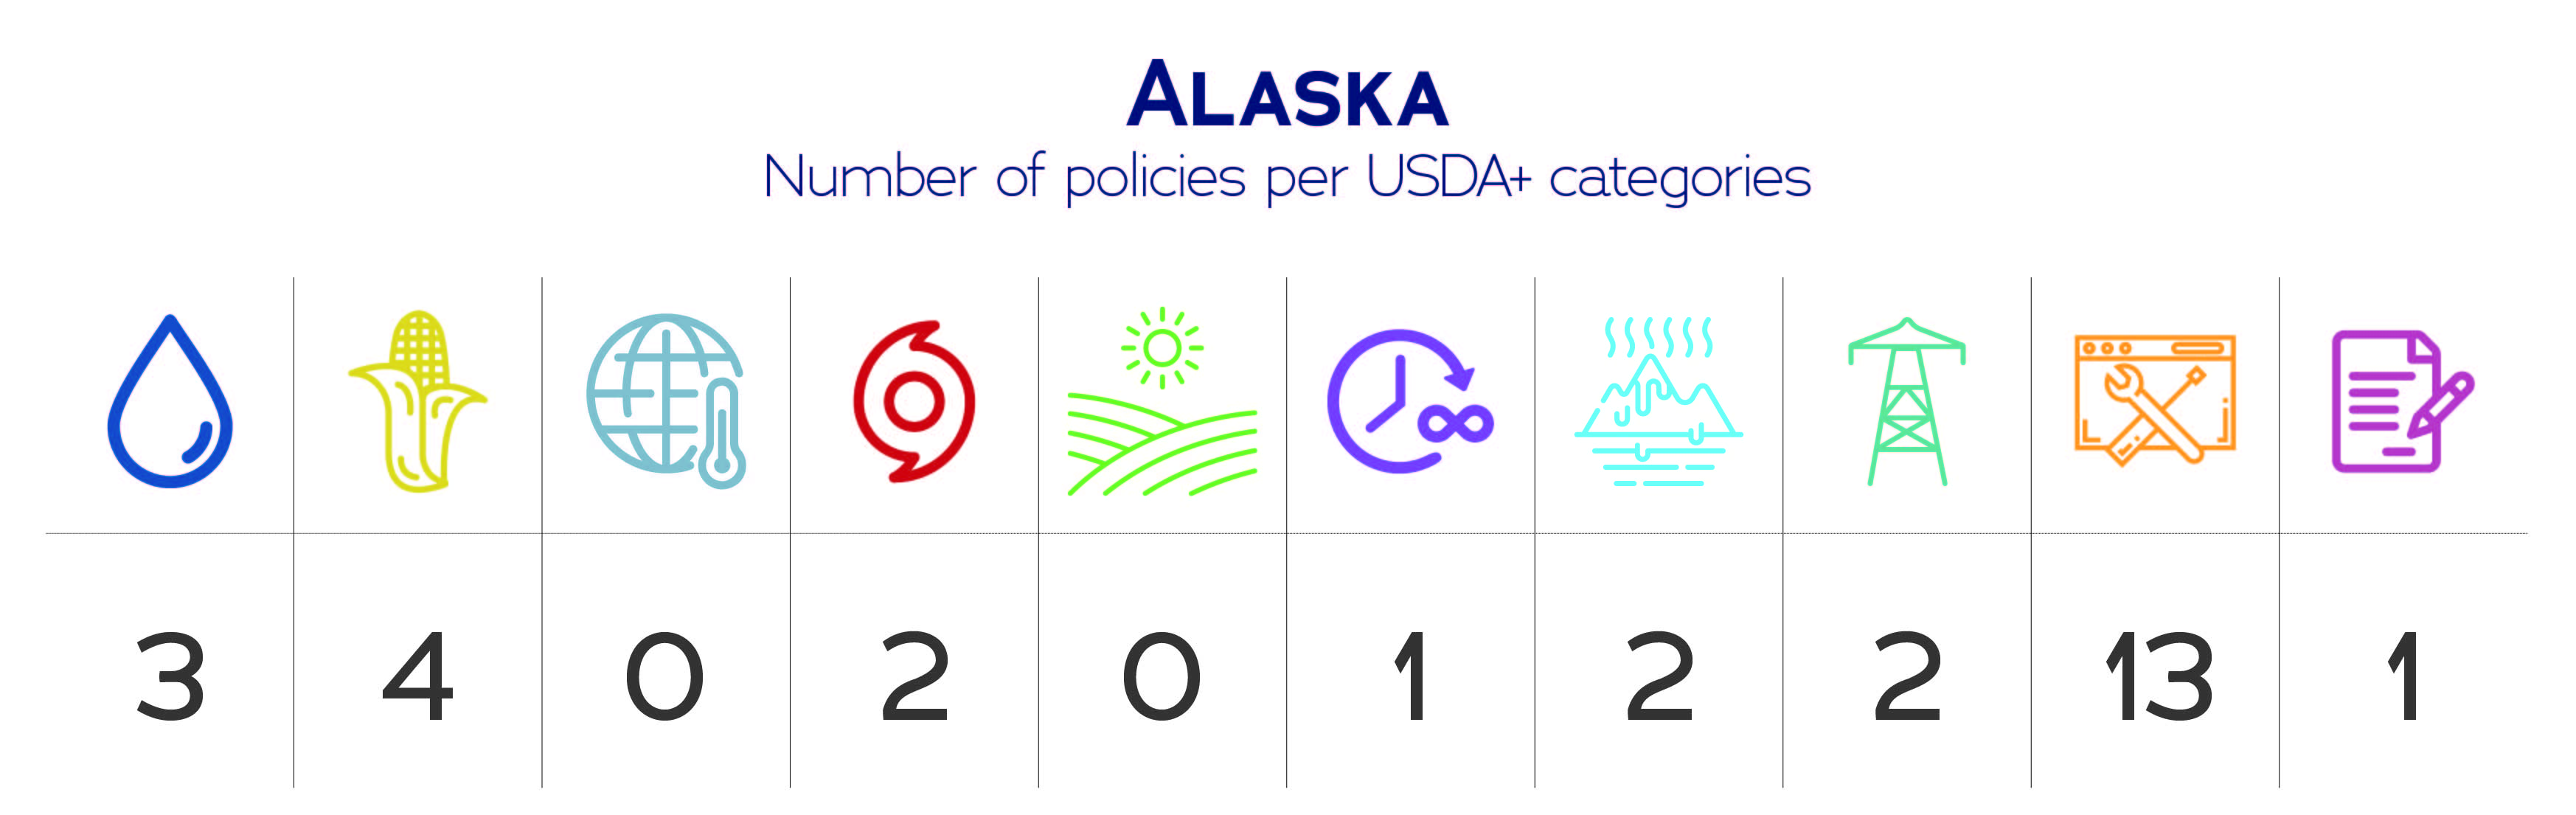 Alaska USDA+ categories